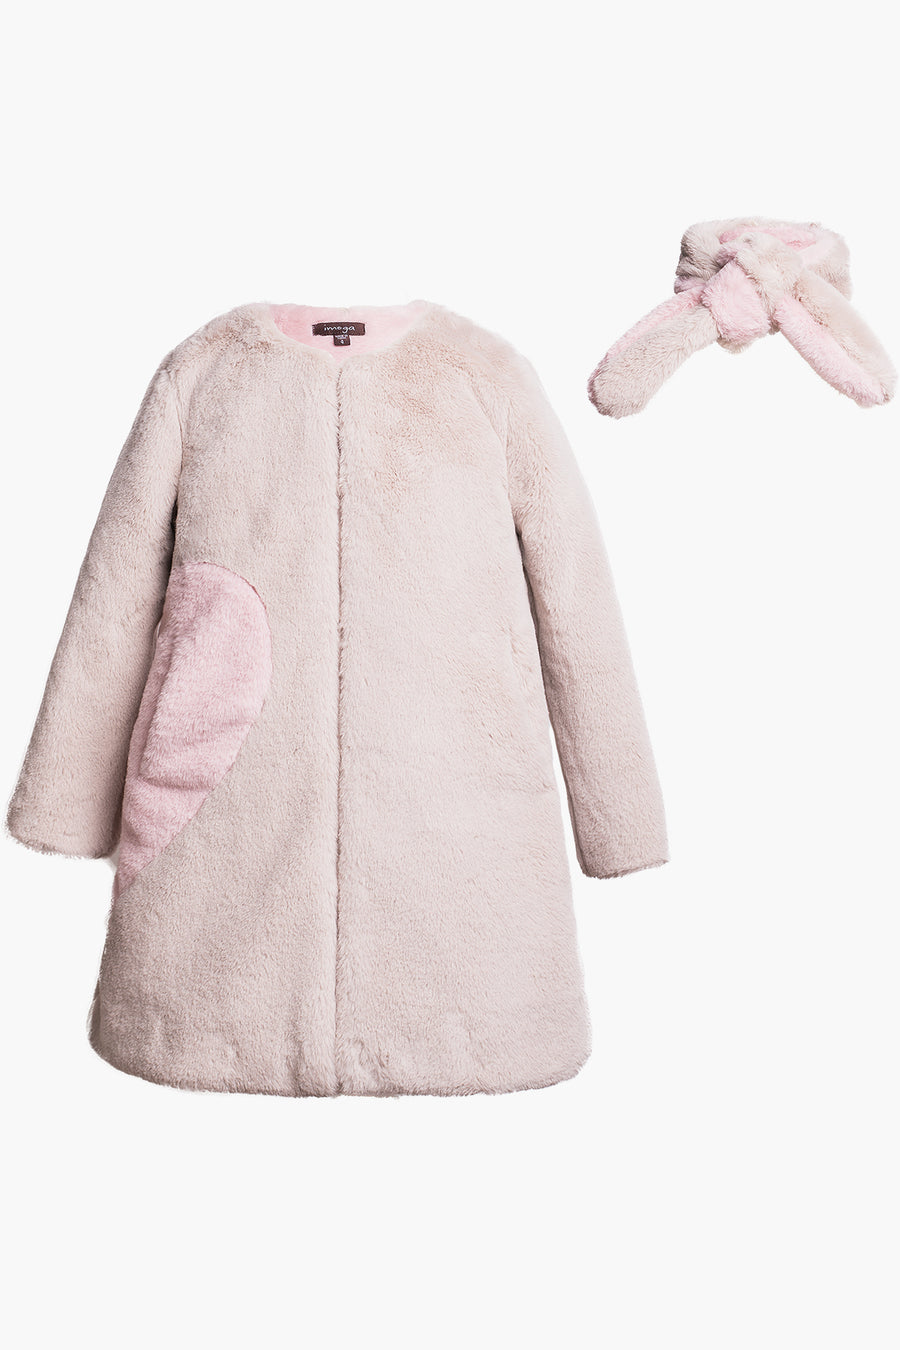 Imoga Frida Girls Coat - Dune